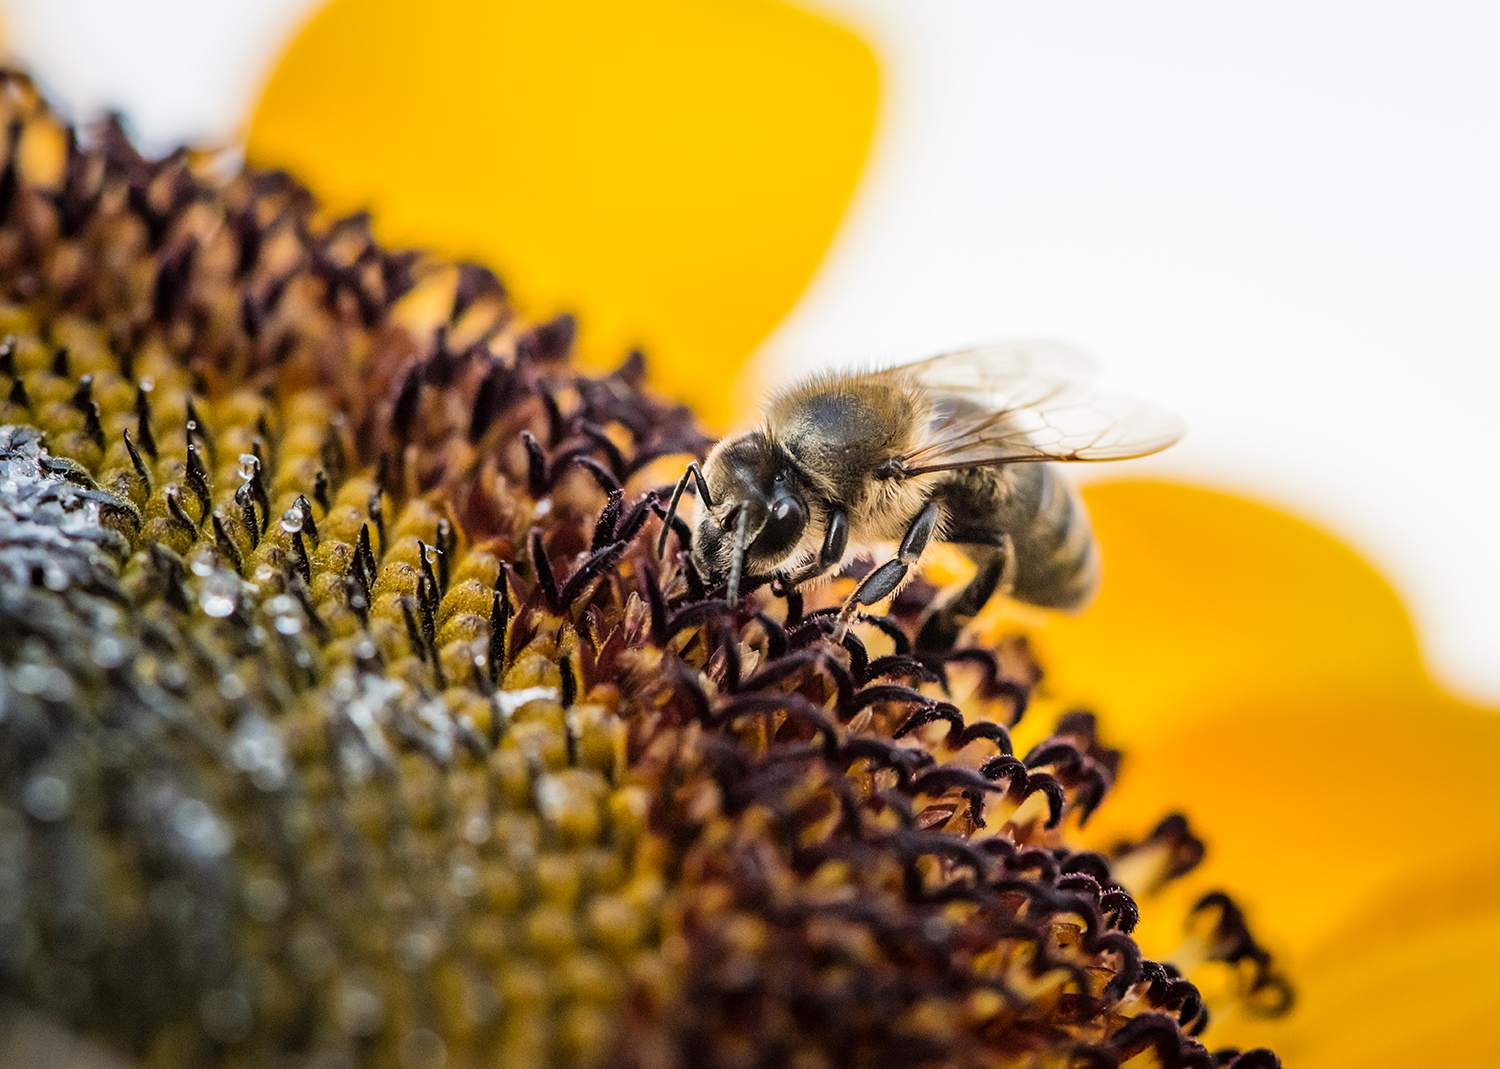 Extreme close-up of bee on sunflower